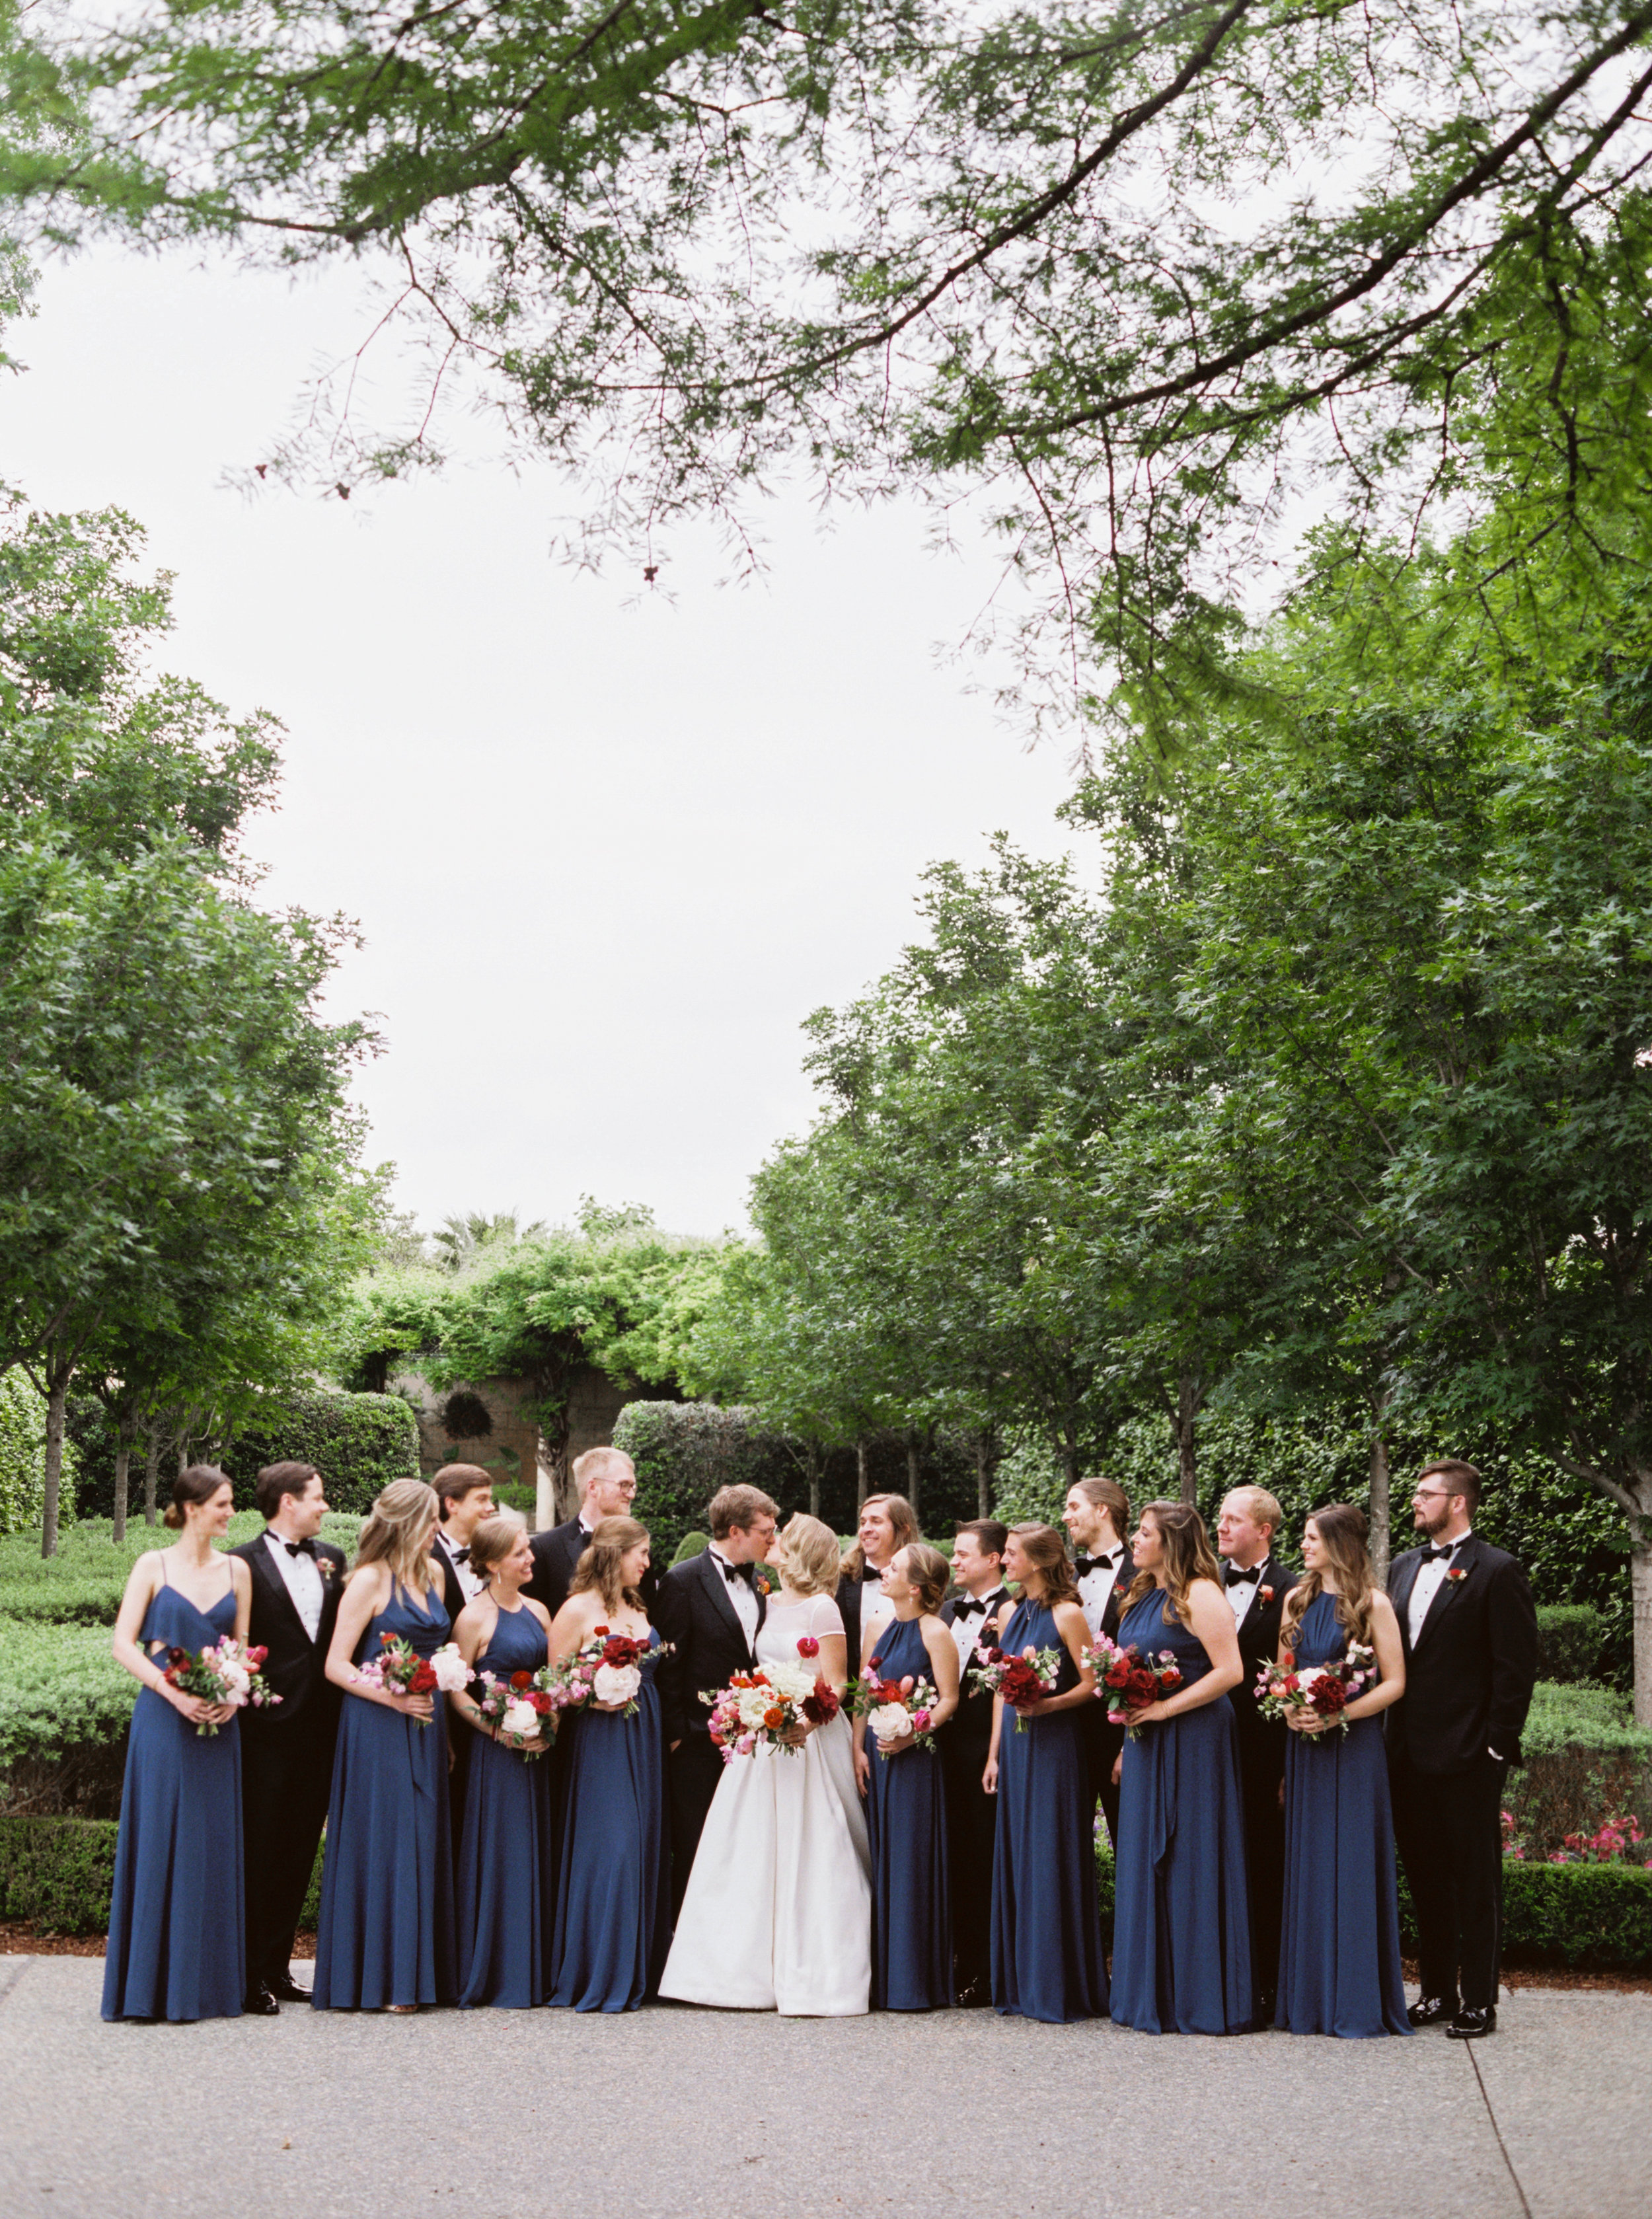 Ana-and-Nick-Wedding-Party-The-Dallas-Arboretum-Ivory-and-Vine.jpg